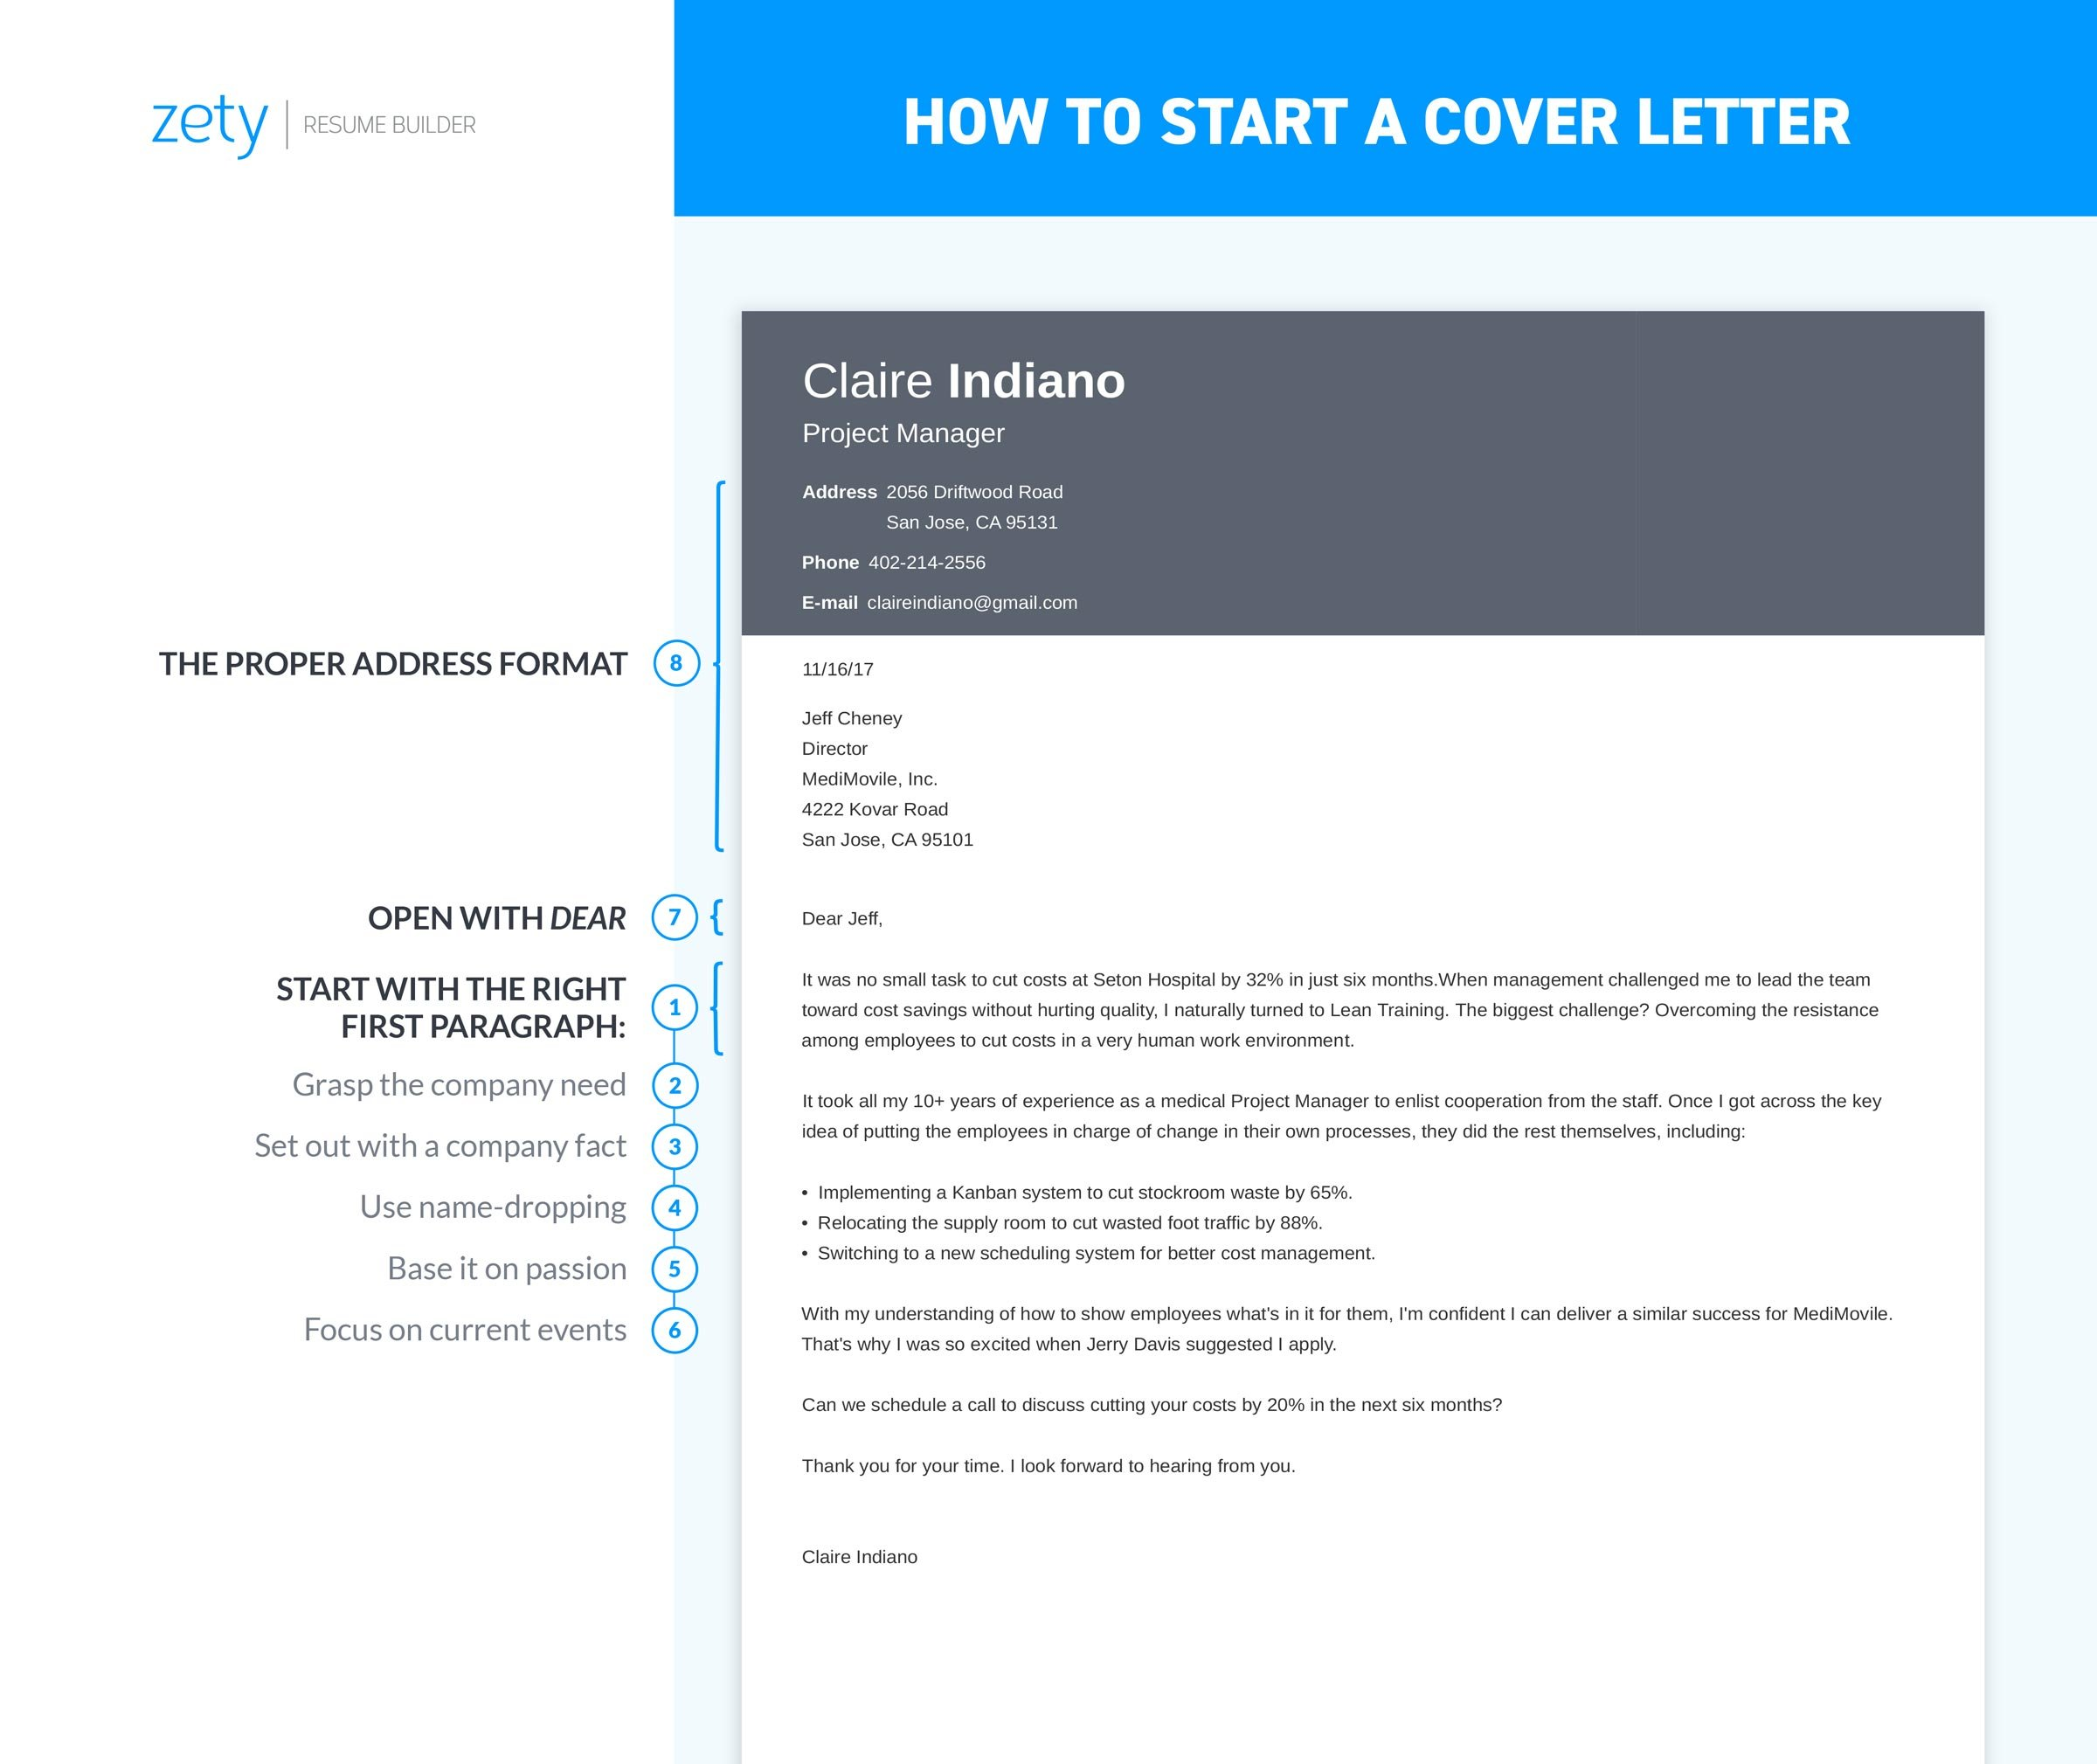 start motivation letter How to Start a Cover Letter: 20+ Great Opening Lines & Paragraphs